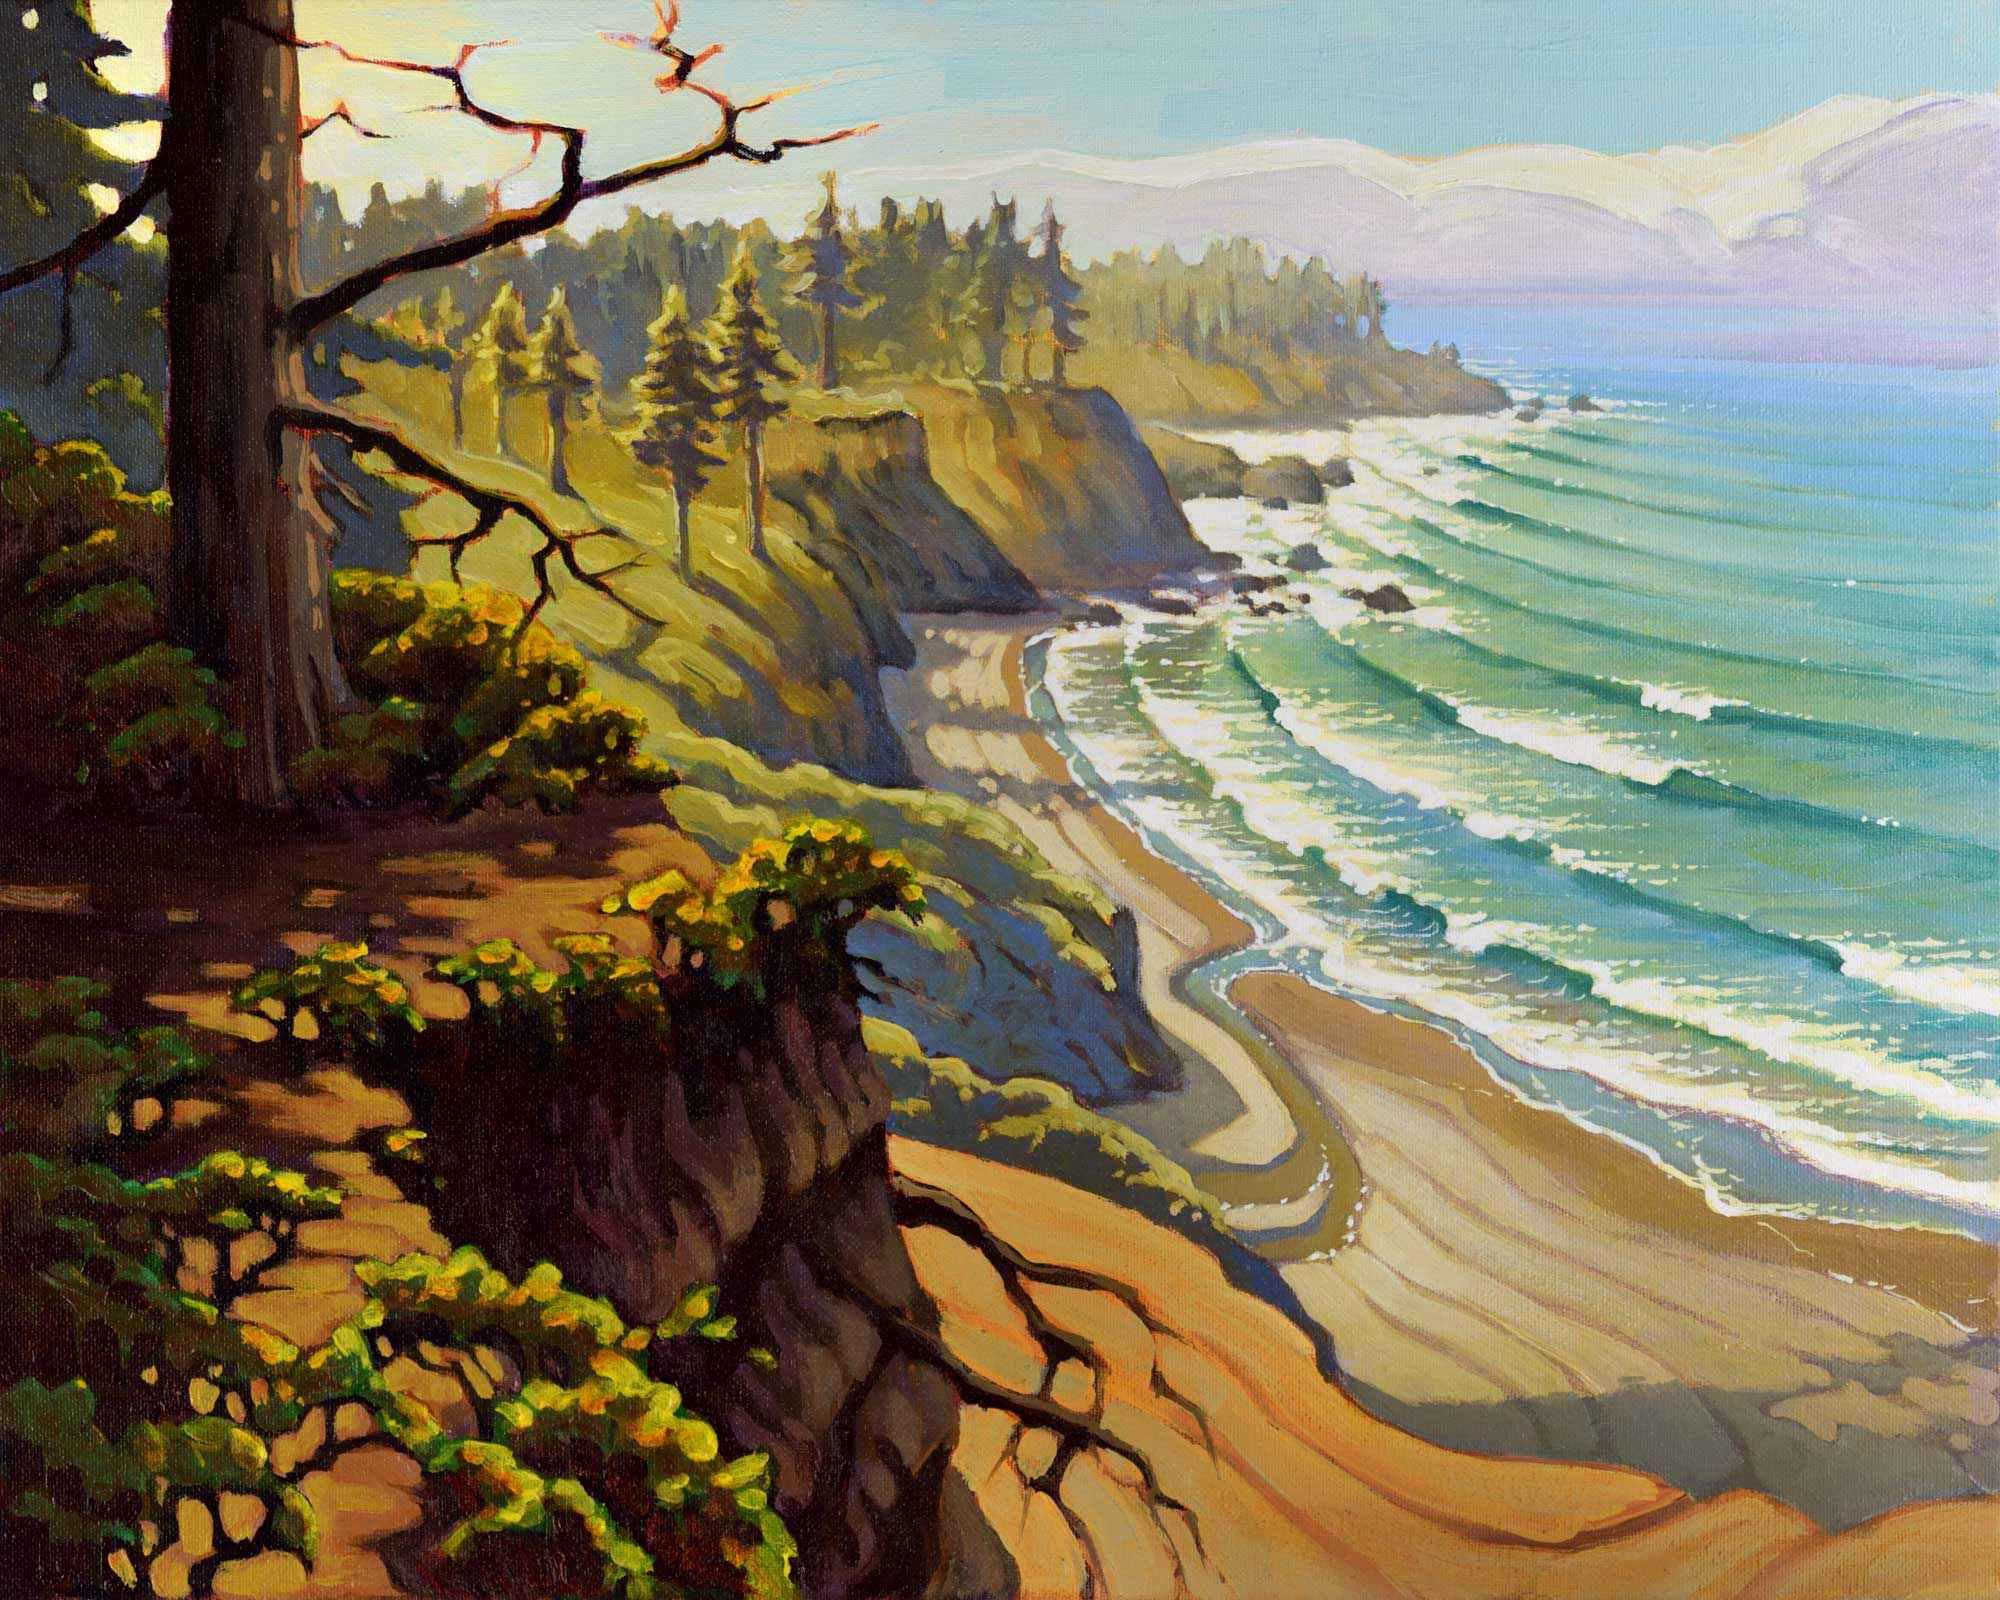 Plein air painting overlooking Patrick's Point State Park and Agate Beach on the Humboldt coast of northern California